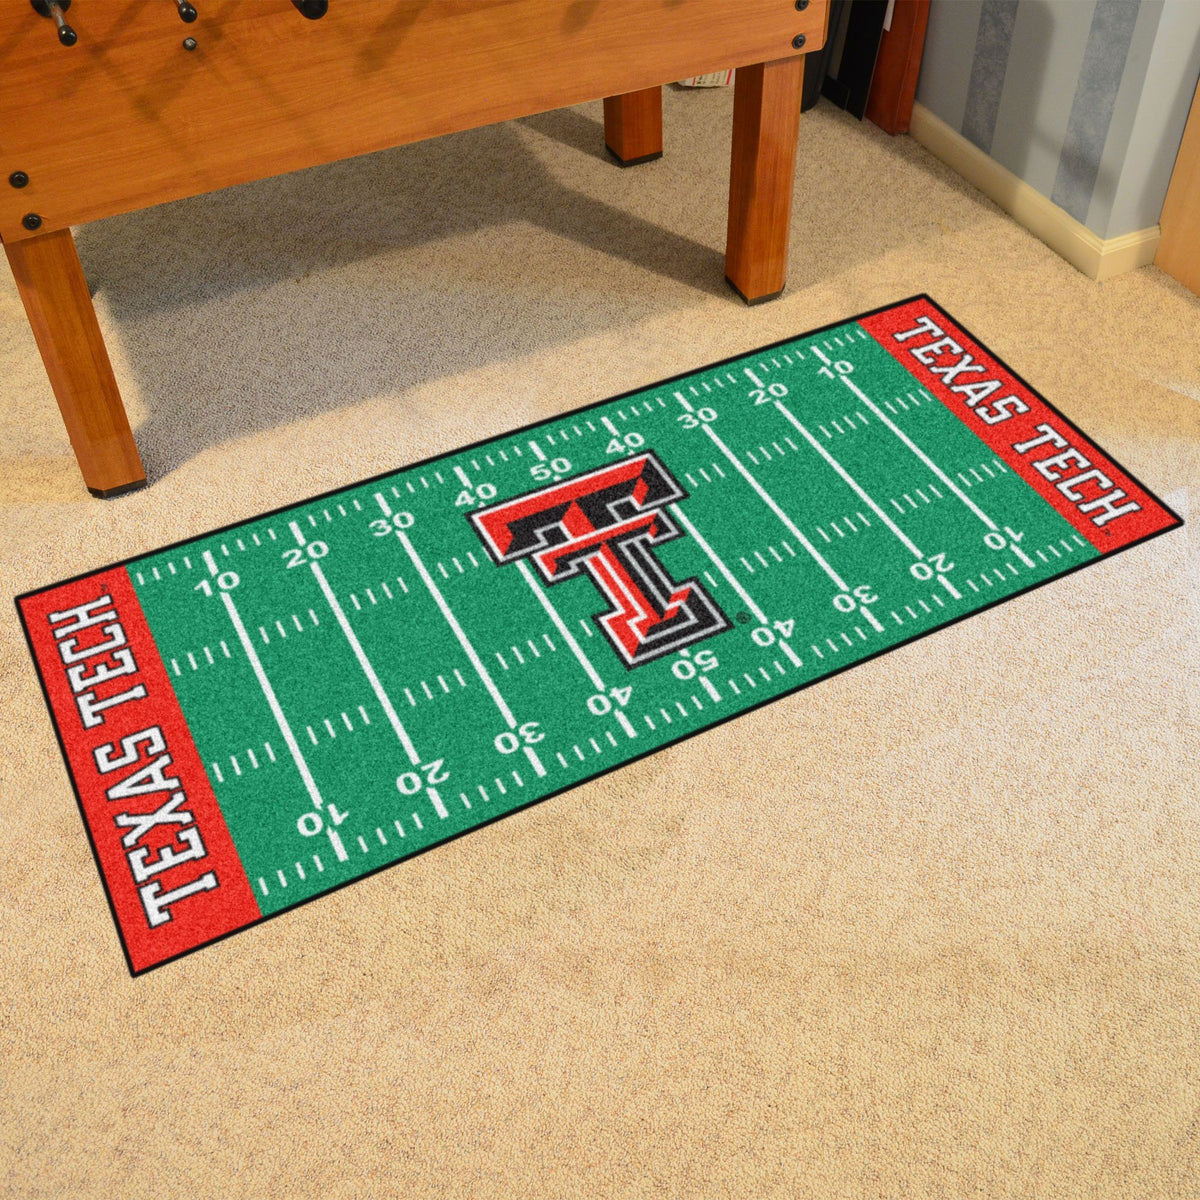 Collegiate - Football Field Runner Collegiate Mats, Rectangular Mats, Football Field Runner, Collegiate, Home Fan Mats Texas Tech